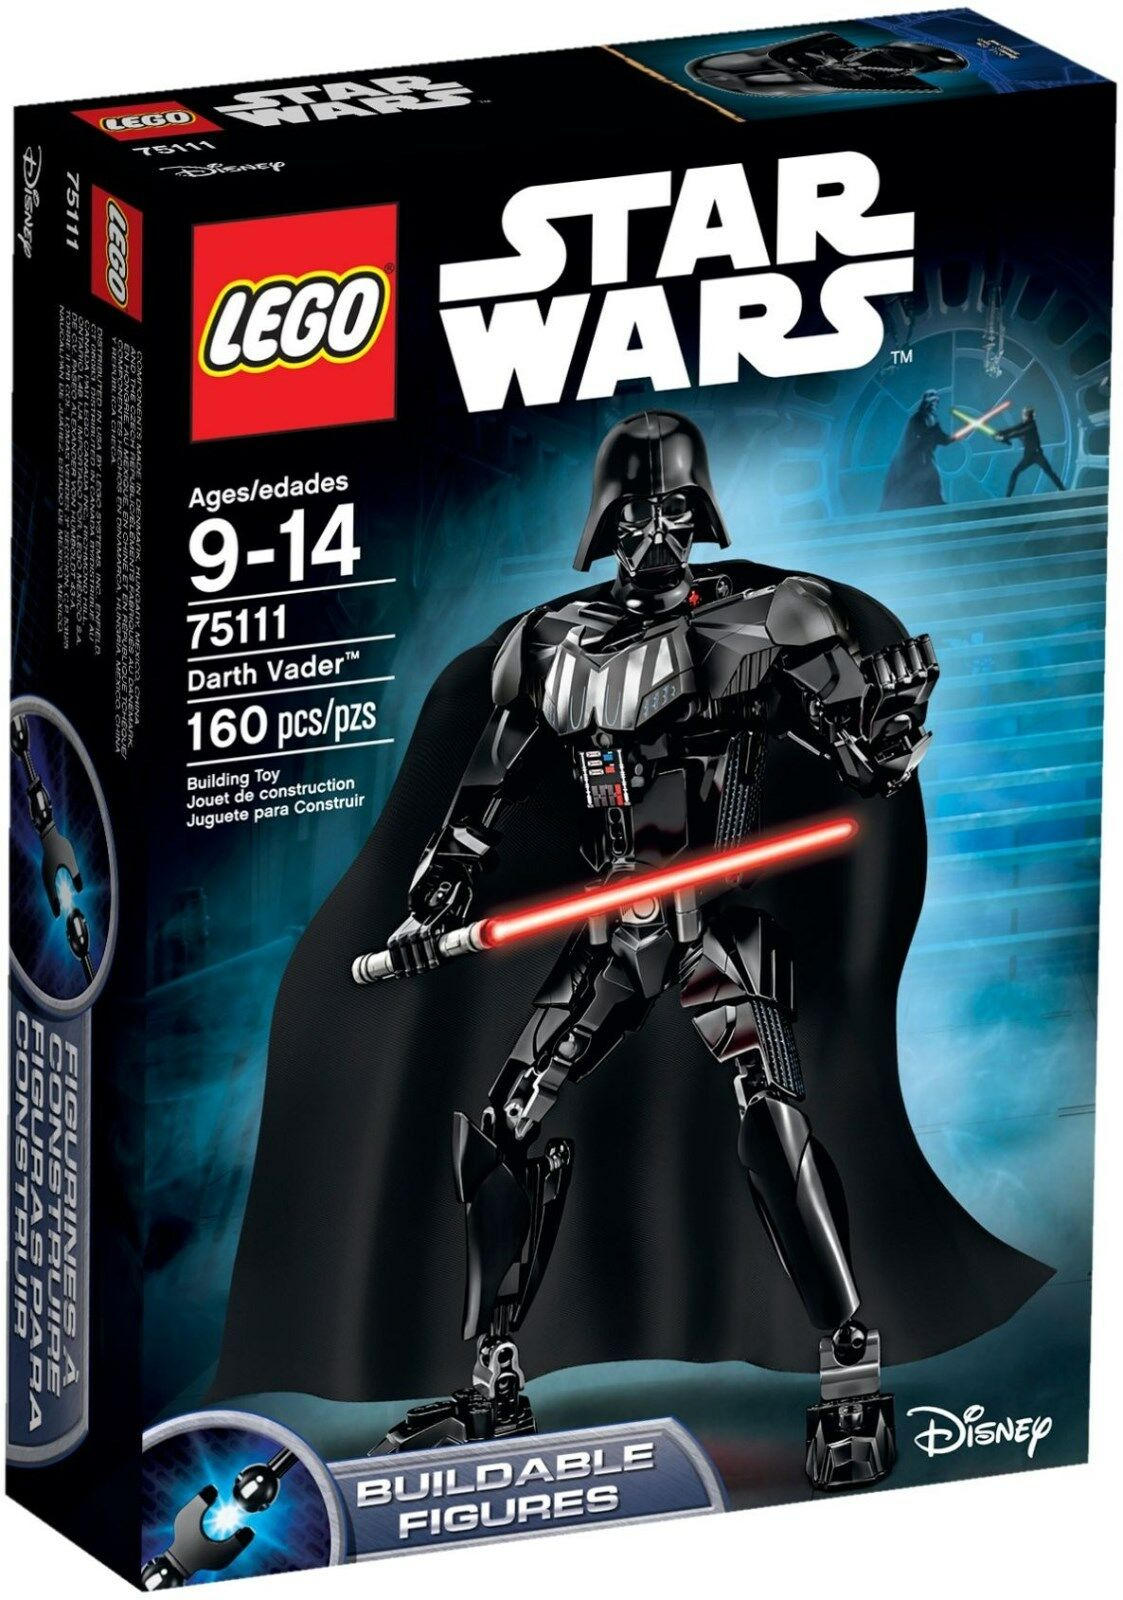 LEGO 75111 - Buildable Figures Star Wars  - DARTH VADER - New & Sealed